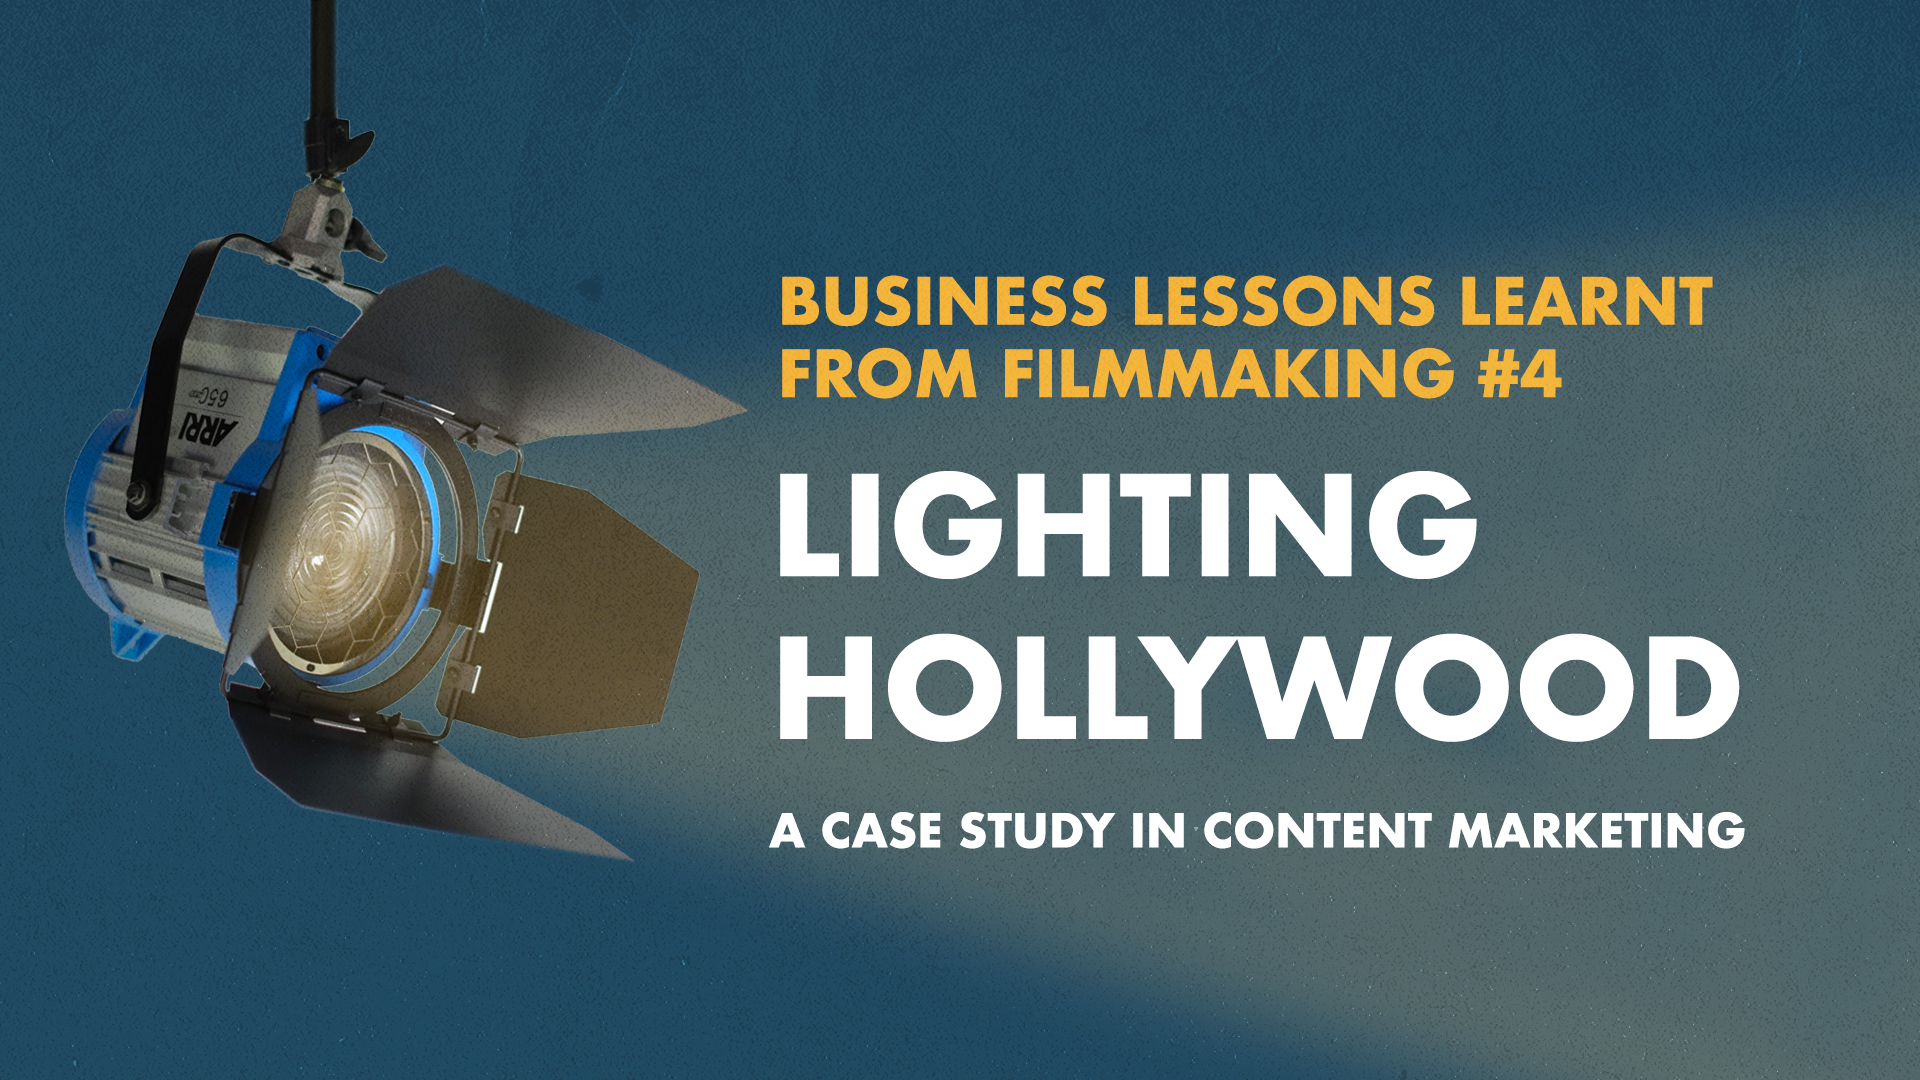 Business Lessons Learnt From Filmmaking: Content Marketing